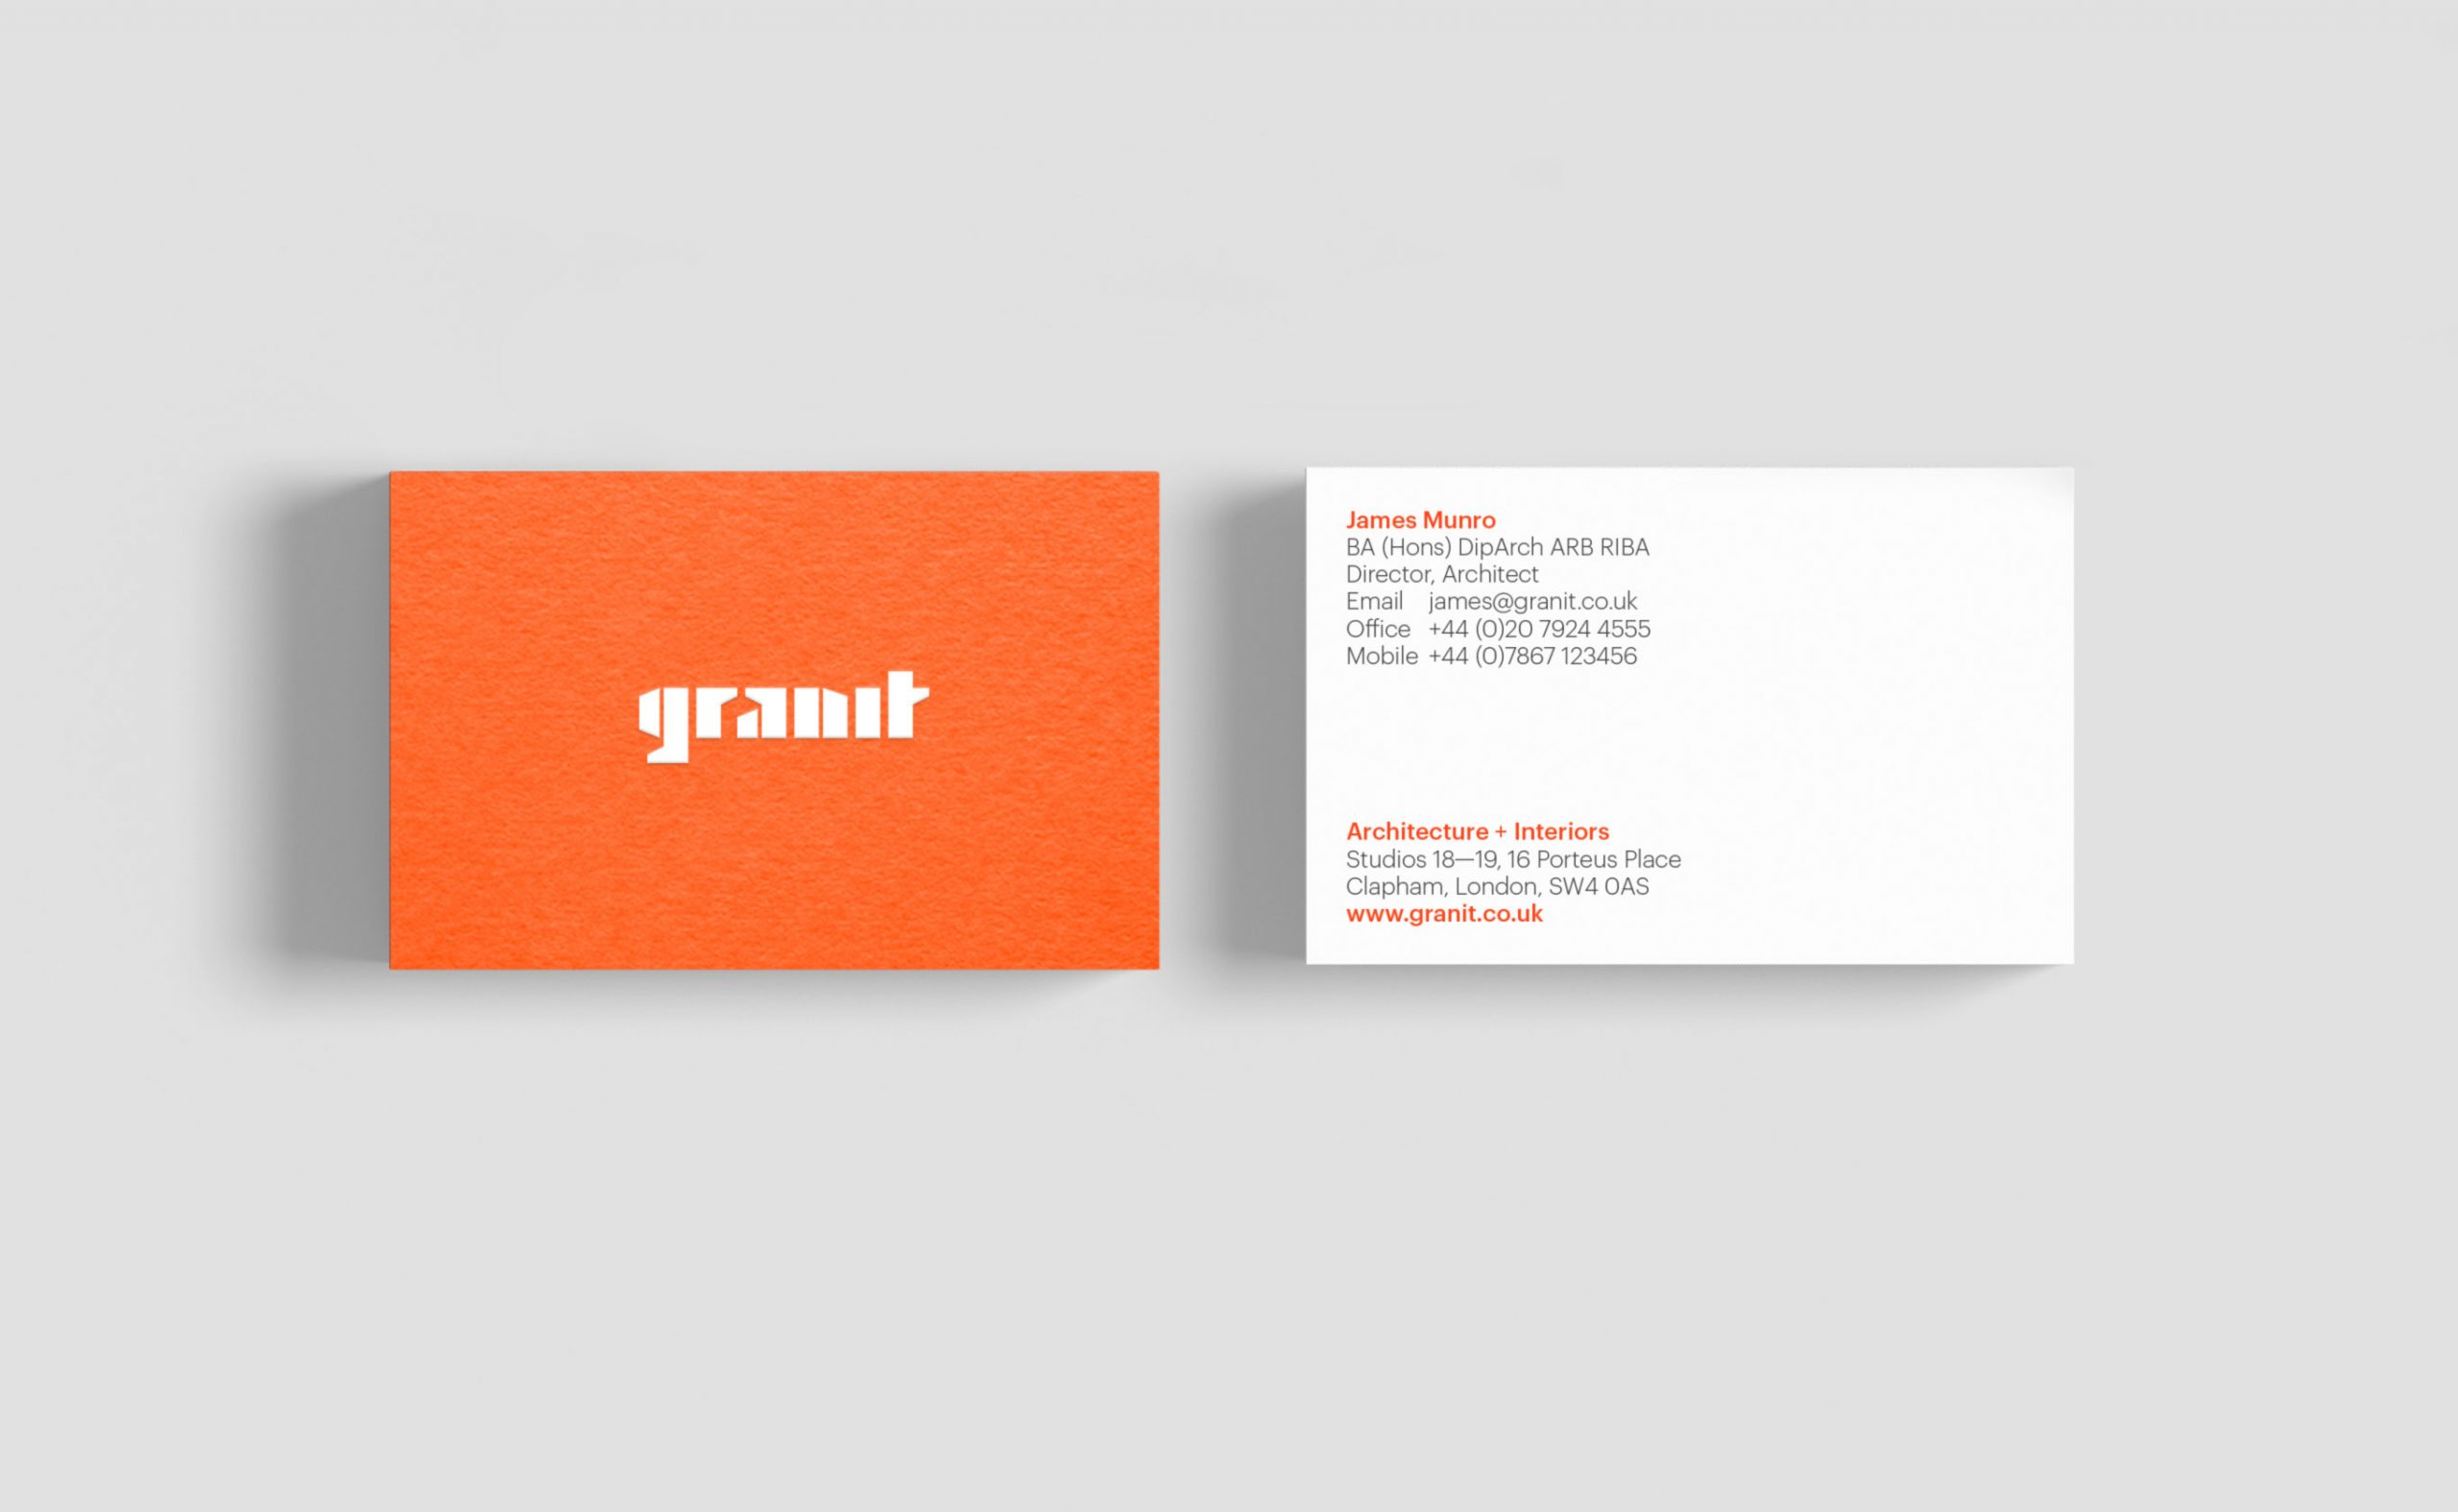 granit-business-cards